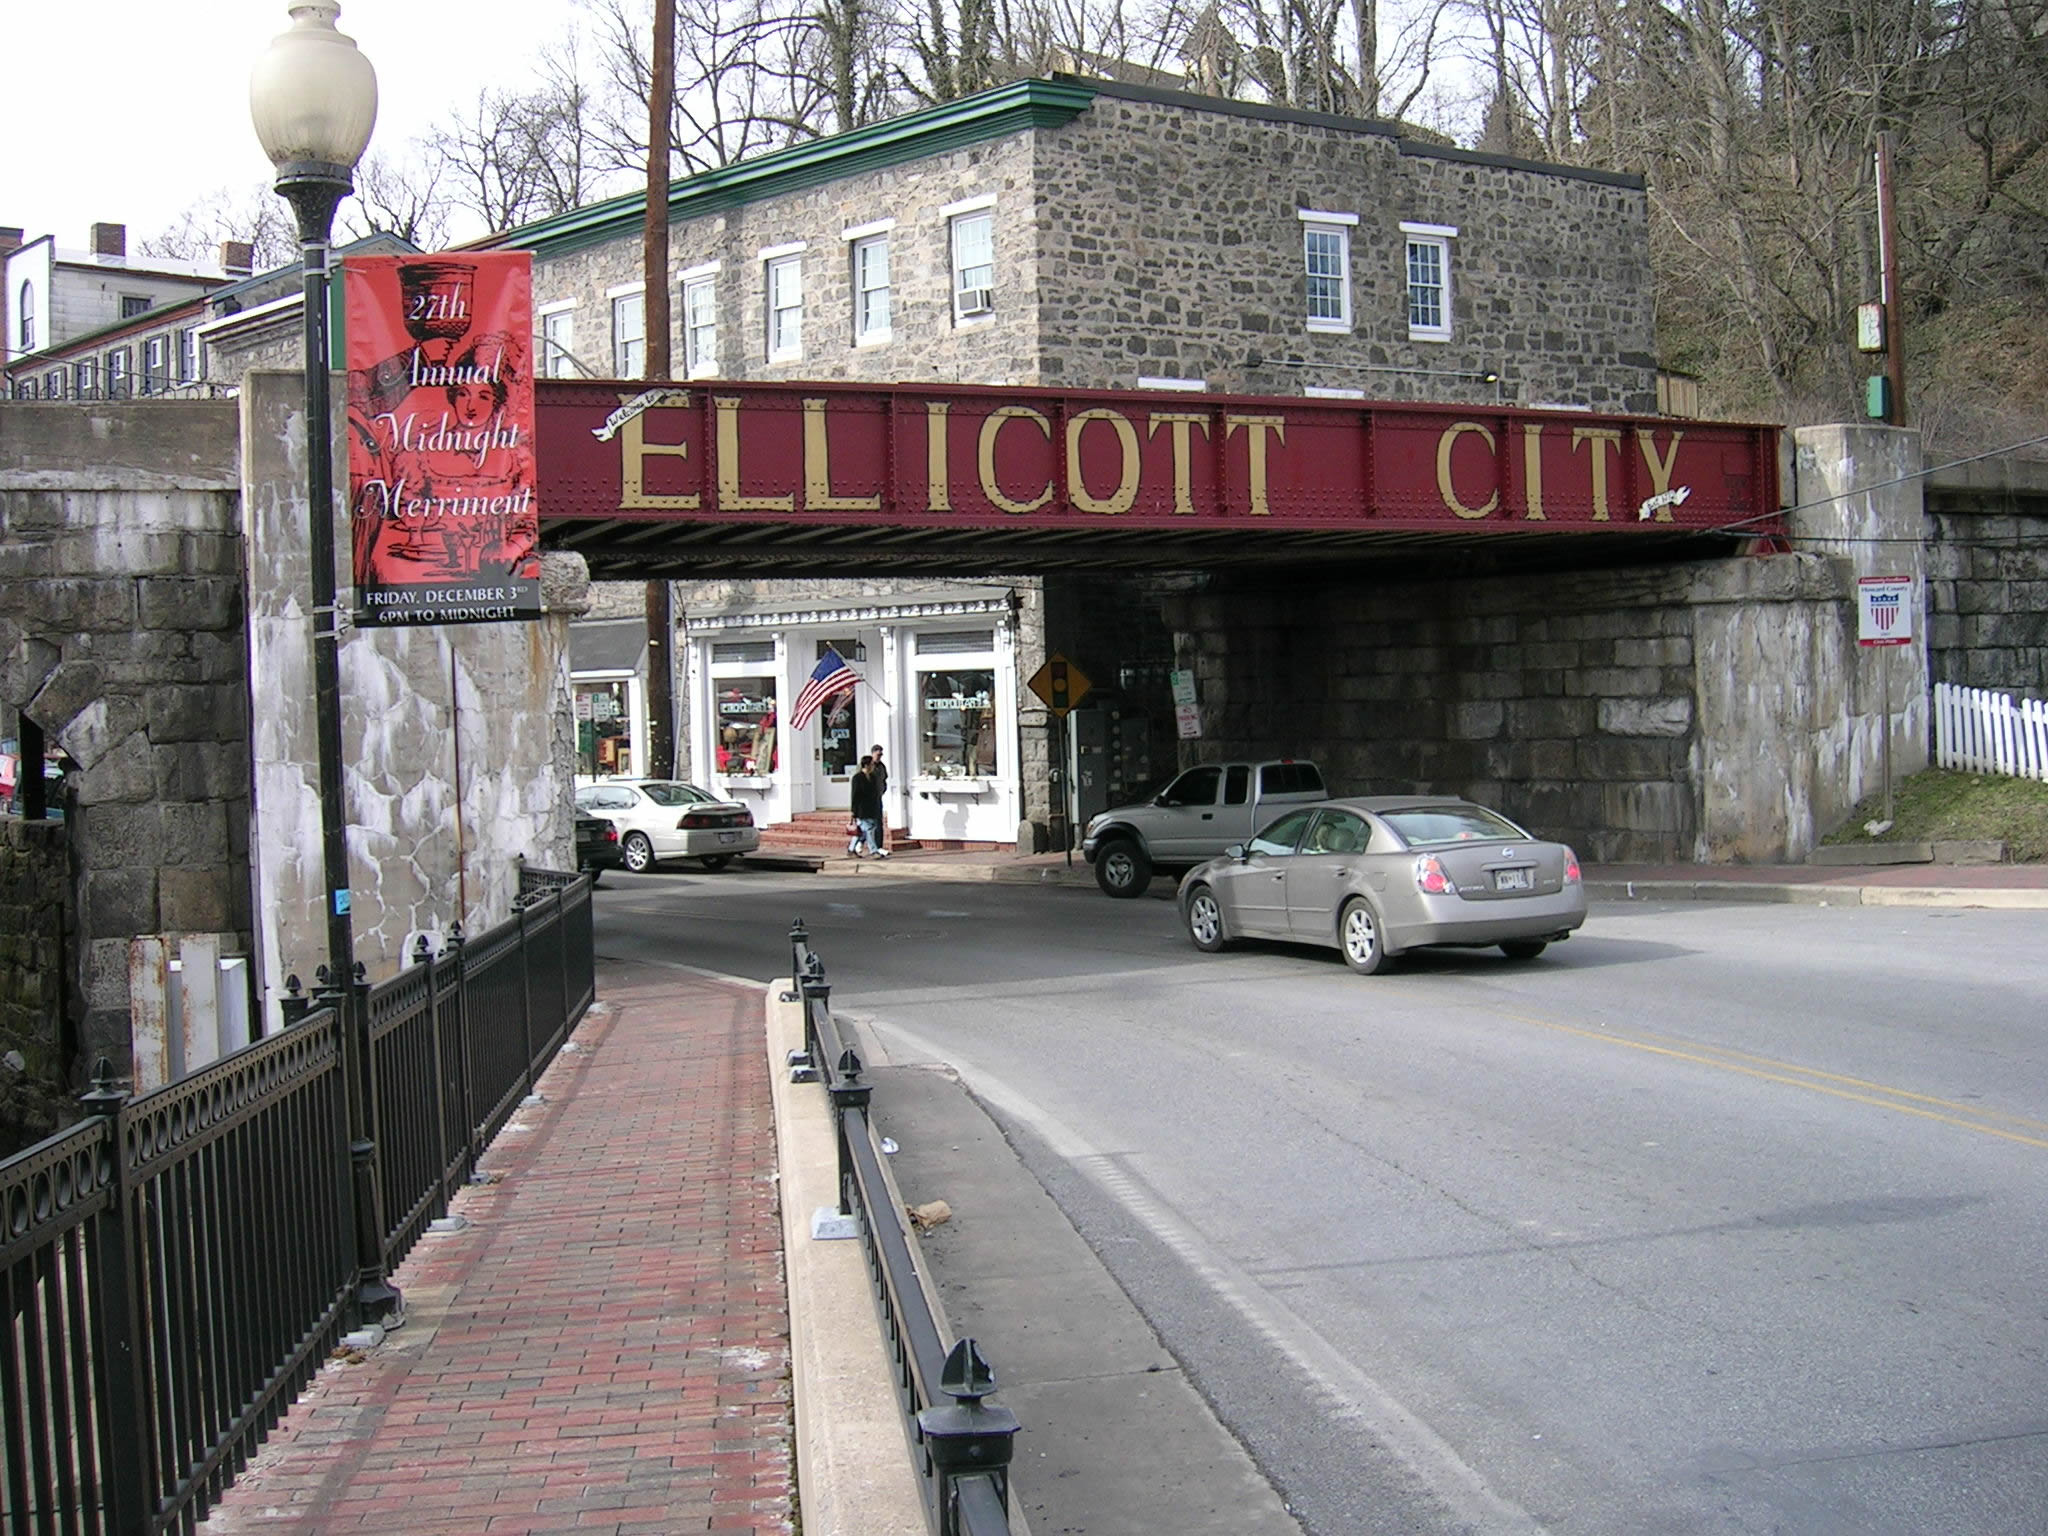 ellicott city See all 416 apartments in ellicott city, md currently available for rent each apartmentscom listing has verified availability, rental rates, photos, floor.